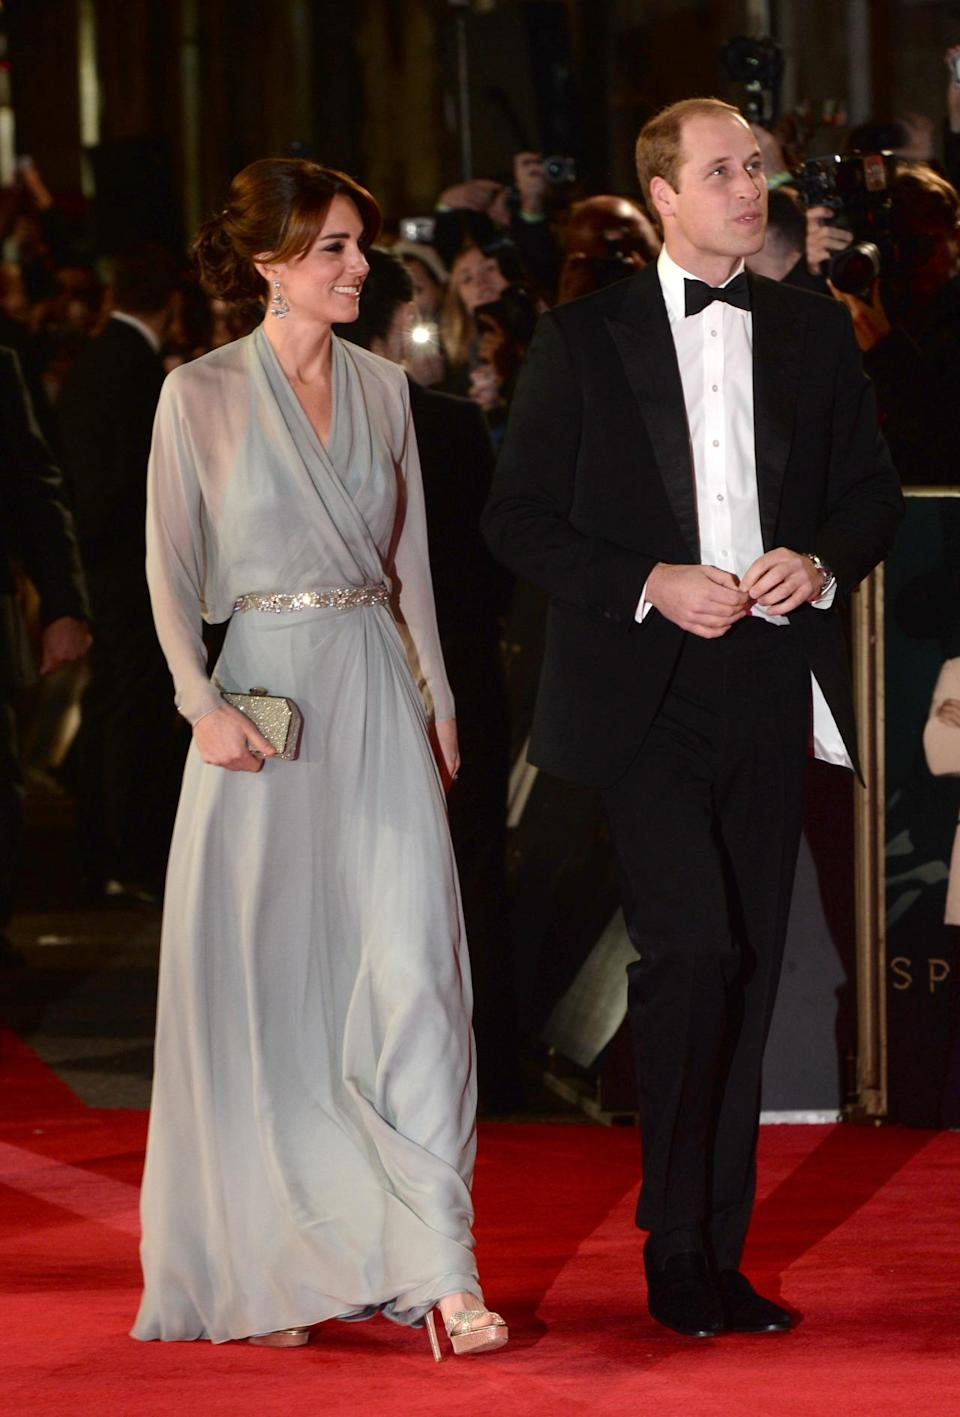 <p>Kate chose an exquisite Jenny Packham gown for the London premiere of James Bond film, <i>Spectre</i>. Created in a light blue hue complete with a glittering belt, her accessories included a sparkly clutch (also by Jenny Packham) and platform sandals by Jimmy Choo. </p><p><i>[Photo: PA]</i></p>